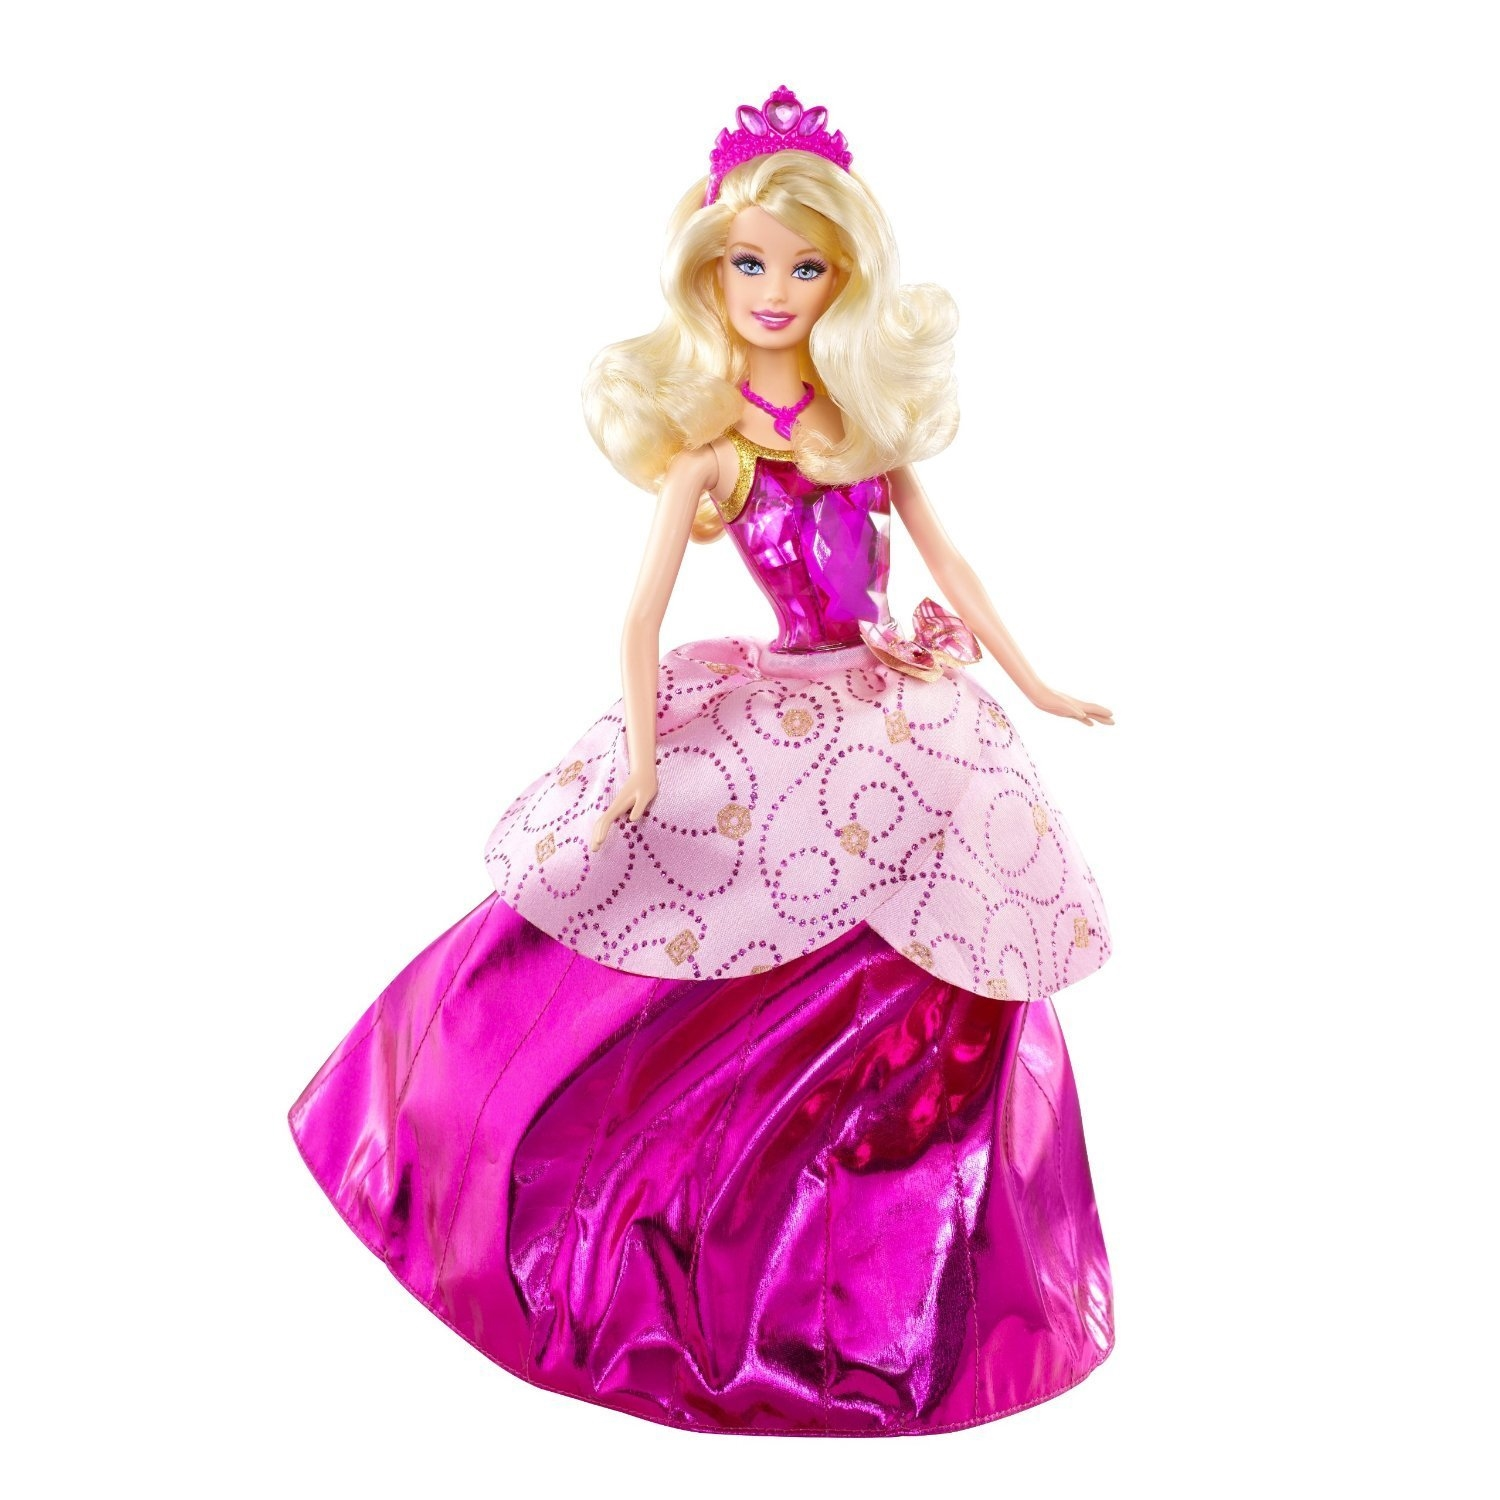 barbie blair 3 in 1 transforming doll image